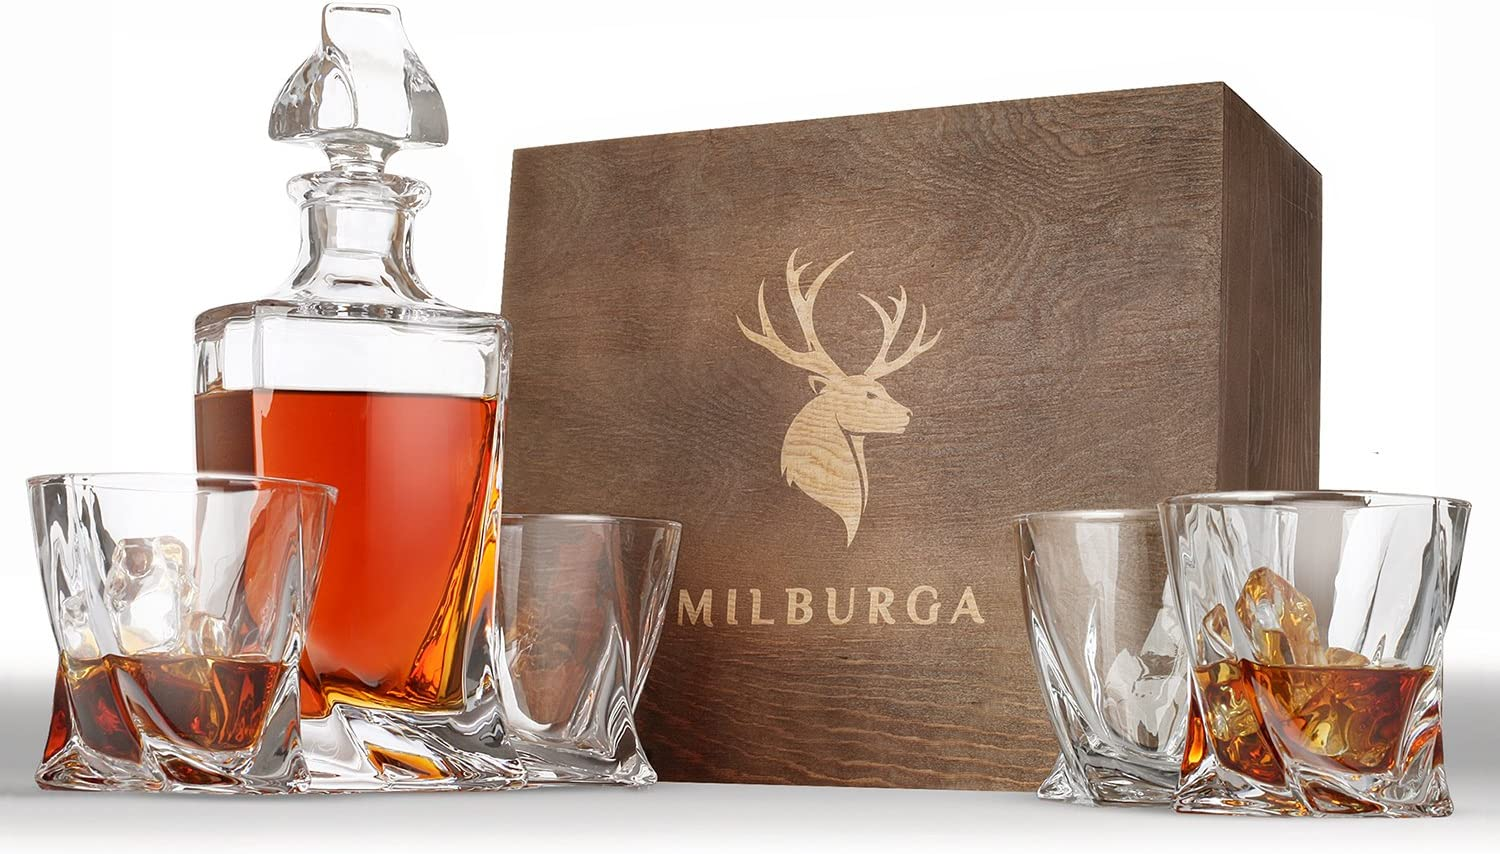 Premium Quality 5-Piece Whiskey Decanter Set and 4 Glasses in Exquisite Hand Crafted Wooden Box – Unique Design Lead-Free Crystal Liquor Decanter. Perfect Gift Set for Scotch, Bourbon or Whisky